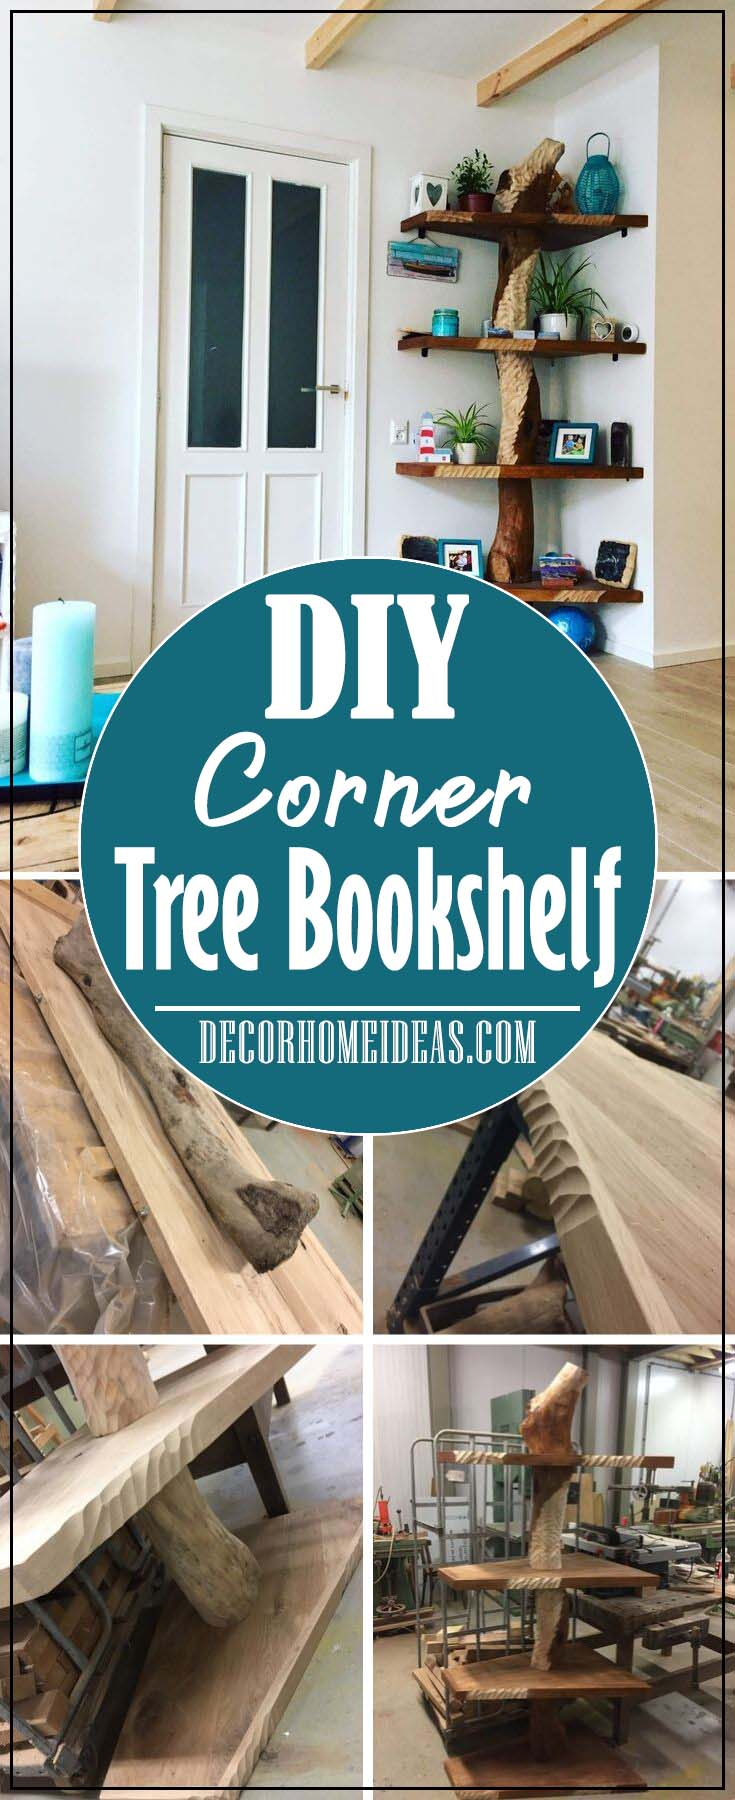 How To DIY Corner Tree Bookshelf #diy #bookshelf #tree #decorhomeideas